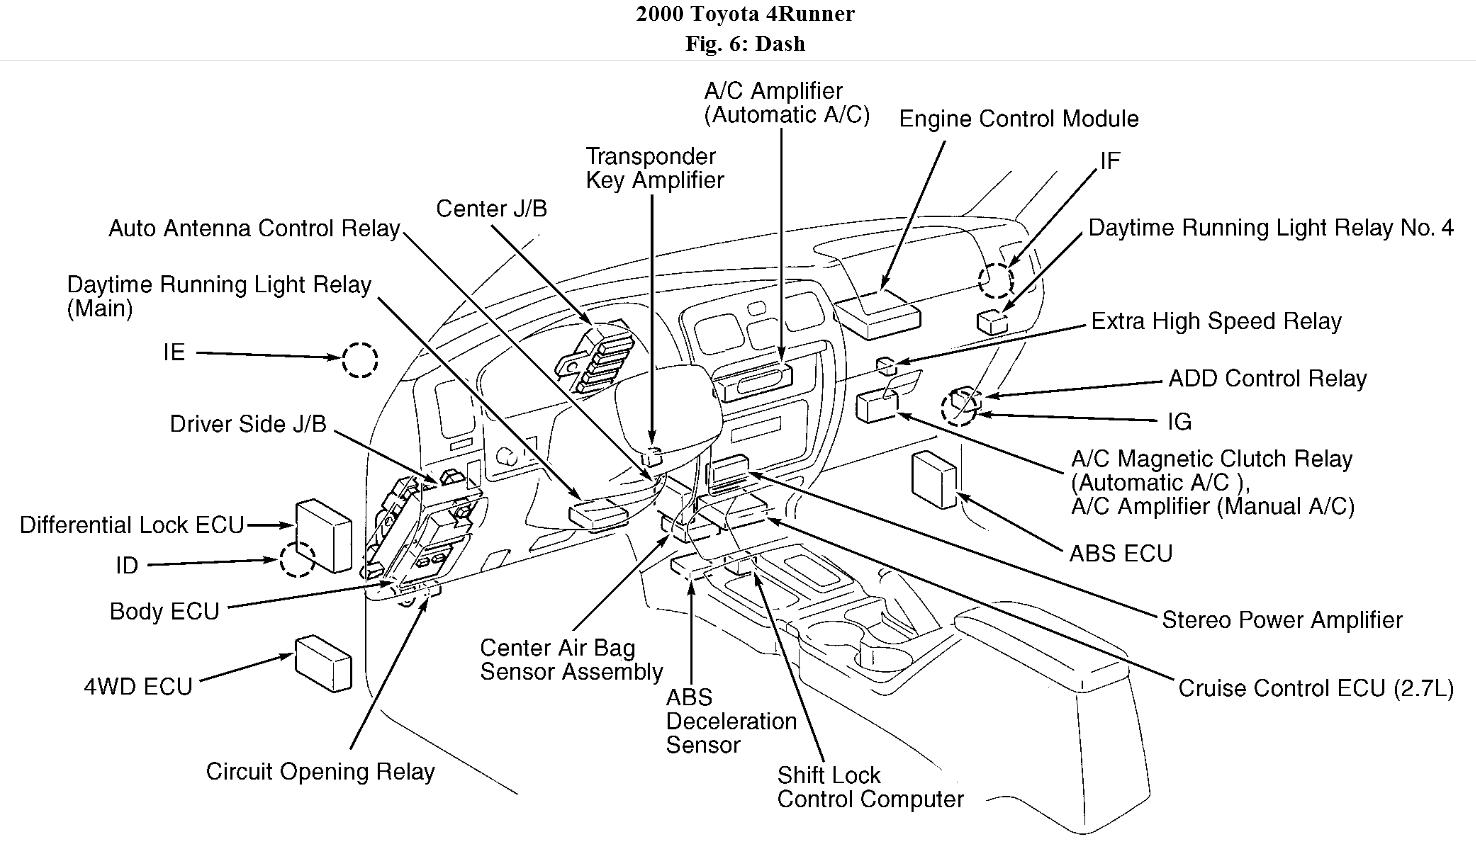 2000 4runner Wiring Schematic : 29 Wiring Diagram Images